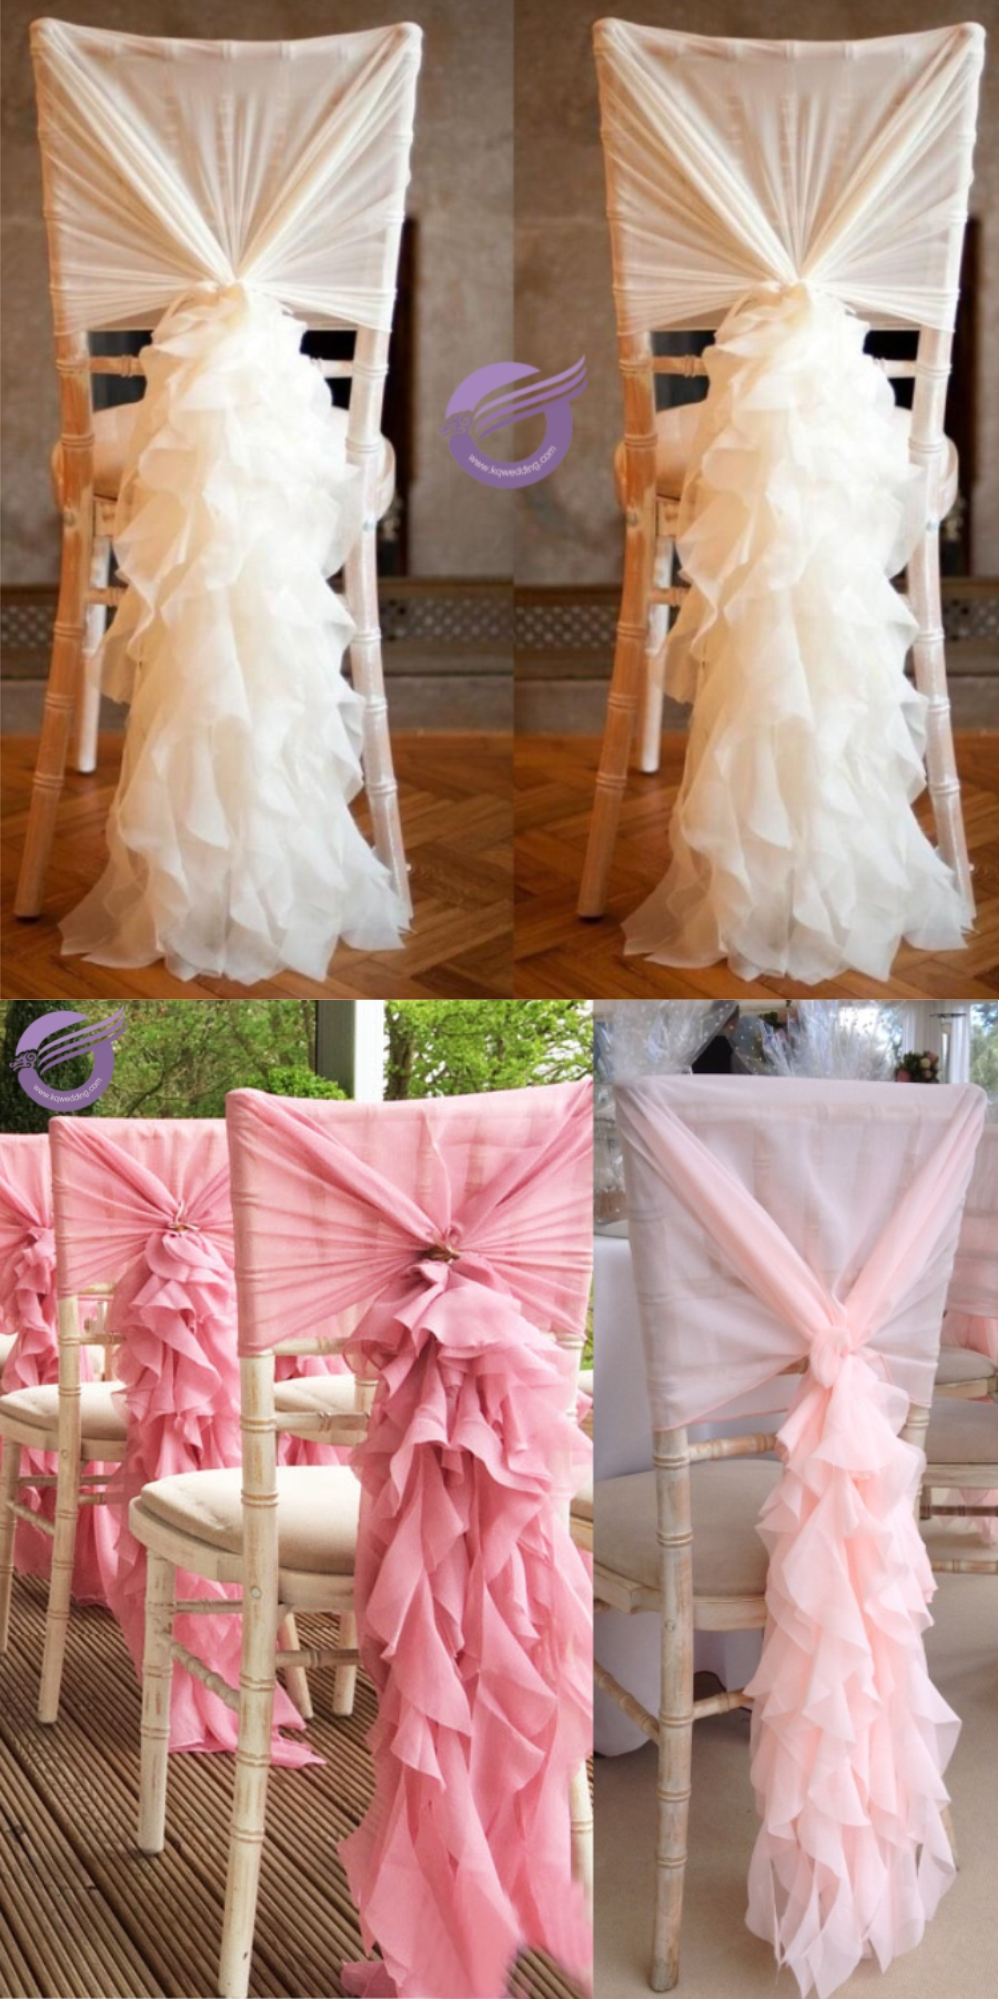 19869 Wedding decoration Curly willow chiffon chair covers for plastic chairs